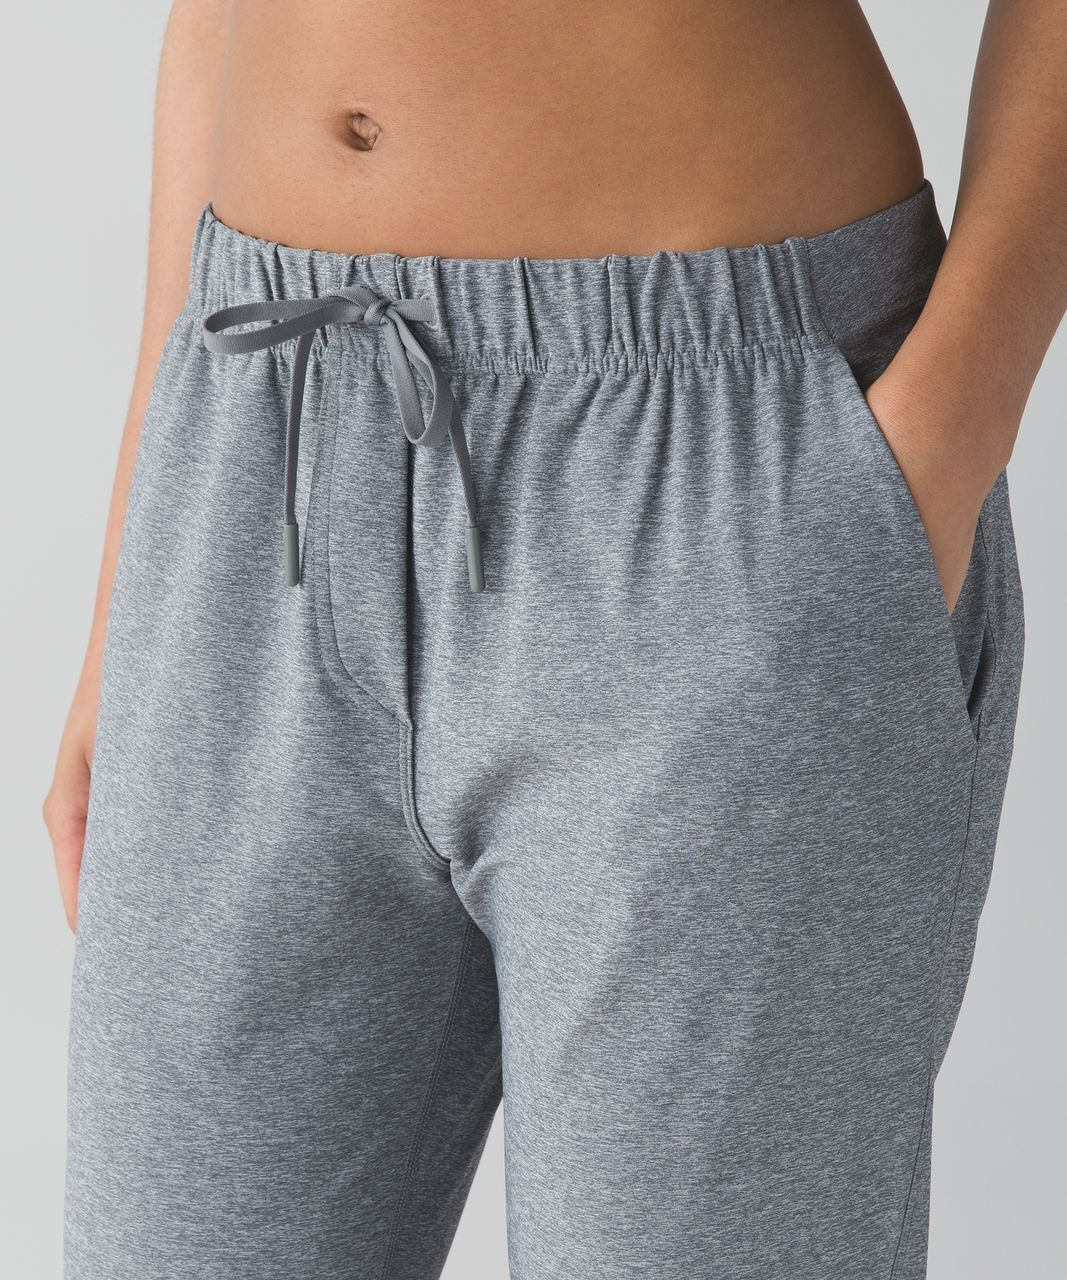 Lululemon Jet Crop (Slim) - Heathered Slate (First Release)